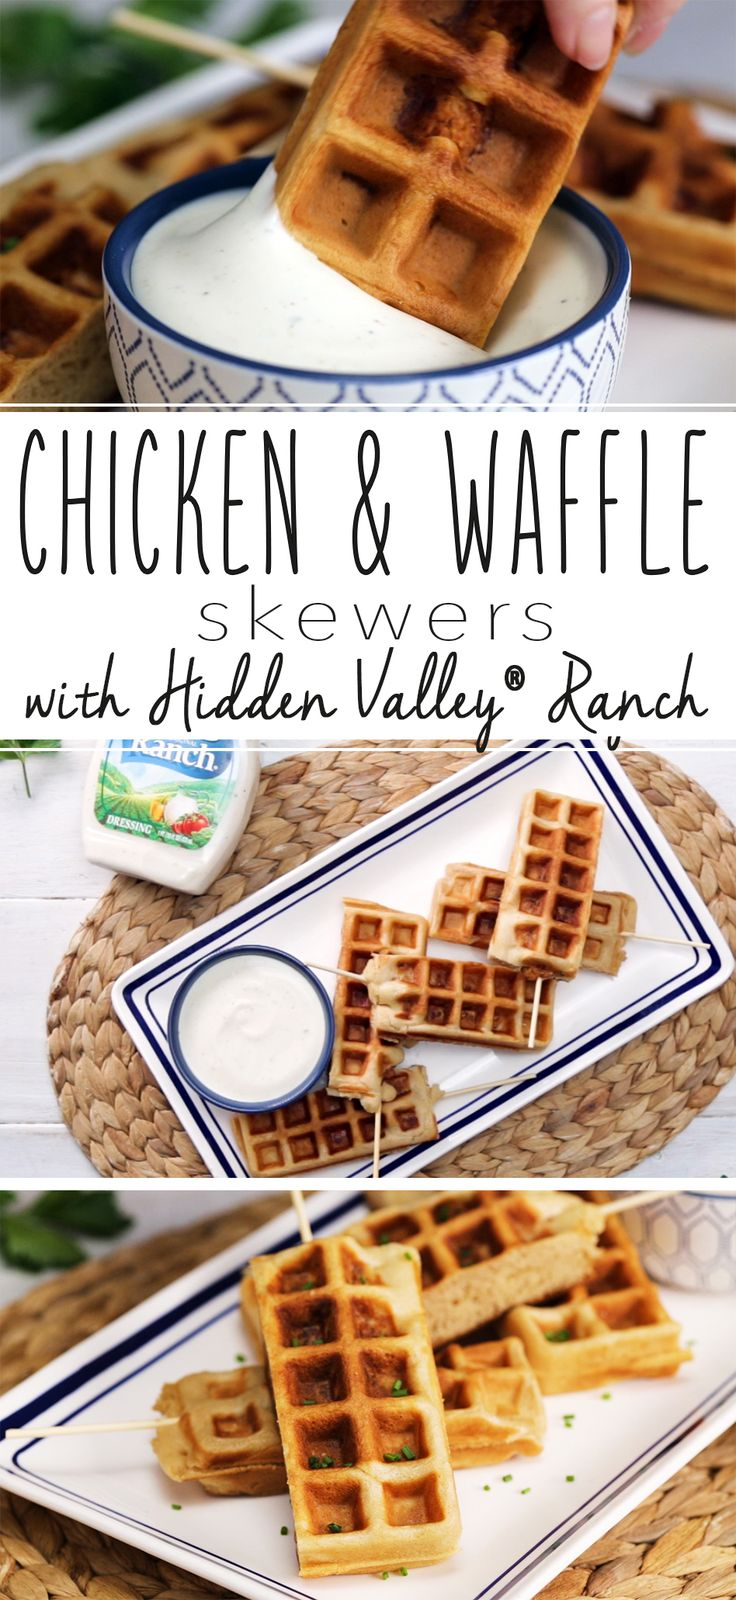 You've never had chicken and waffles like this before. Crispy buttermilk fried chicken INSIDE a waffle, all on a stick that's perfect for dipping into Hidden Valley Ranch dressing. [AD]